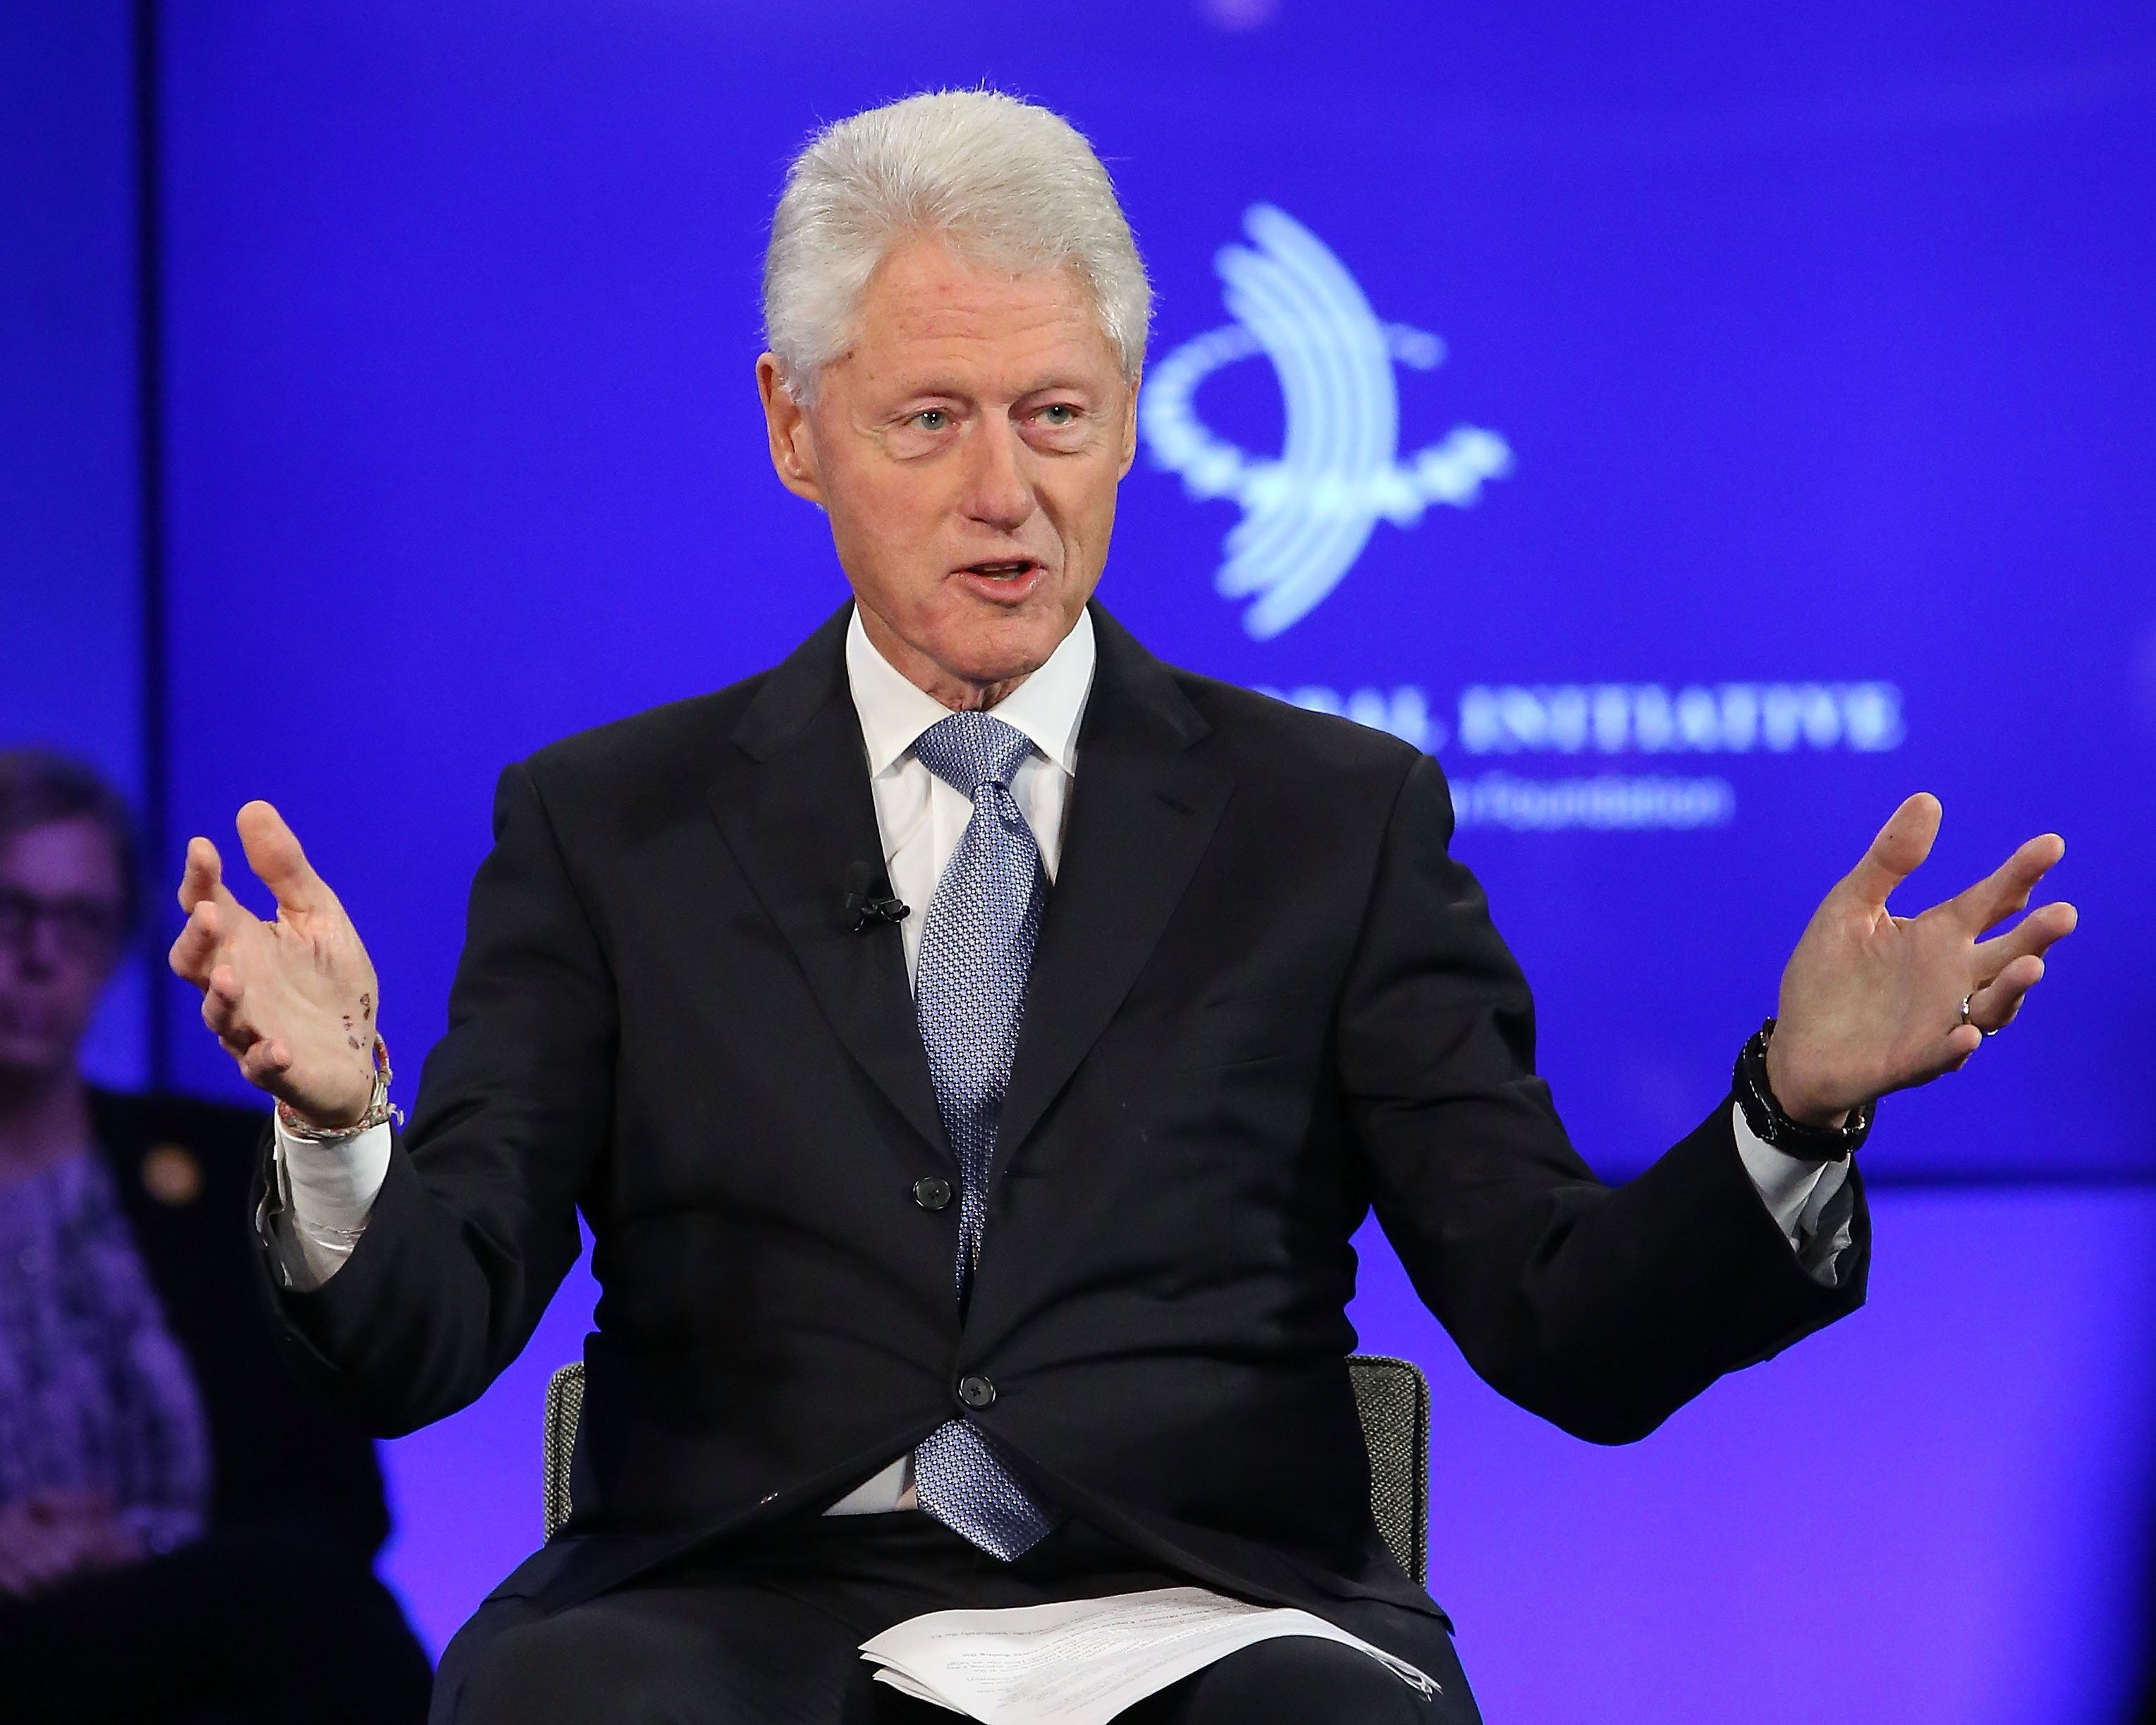 NEW YORK, NY - SEPTEMBER 27:  President Bill Clinton speaks during the 2015 Clinton Global Initiative Annual Meeting at Sheraton Times Square on September 27, 2015 in New York City.  (Photo by Taylor Hill/FilmMagic)